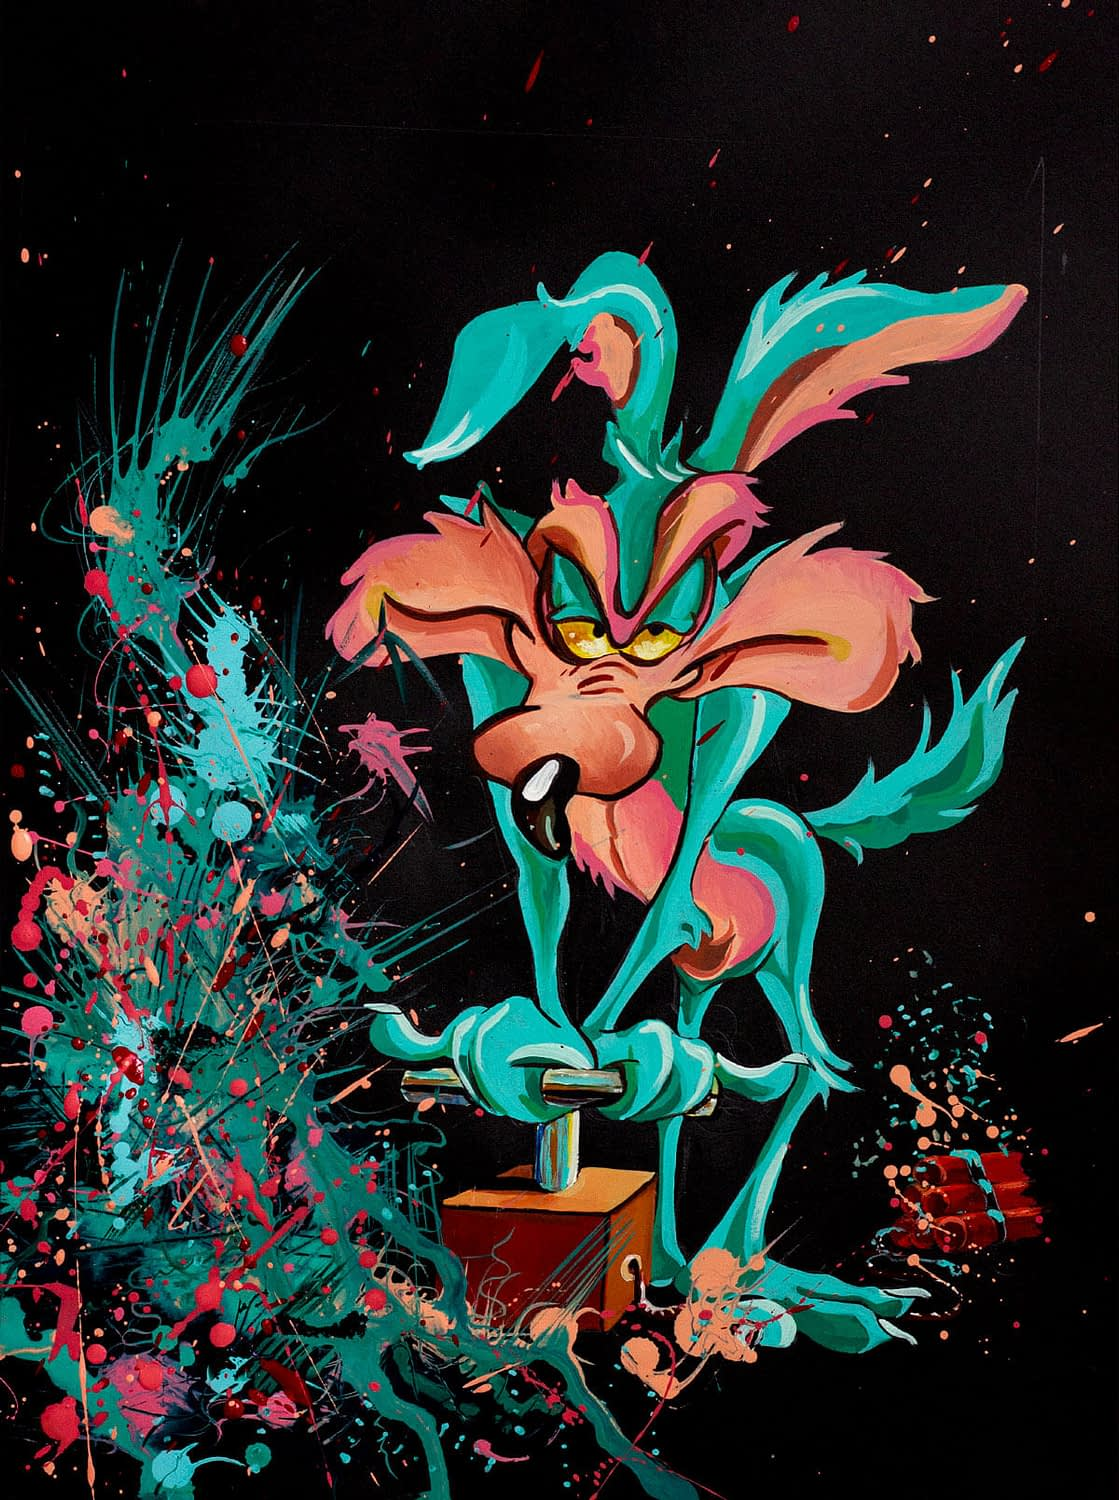 Jackson Series : Wile E. is blowing Jackson - Art Print in Show